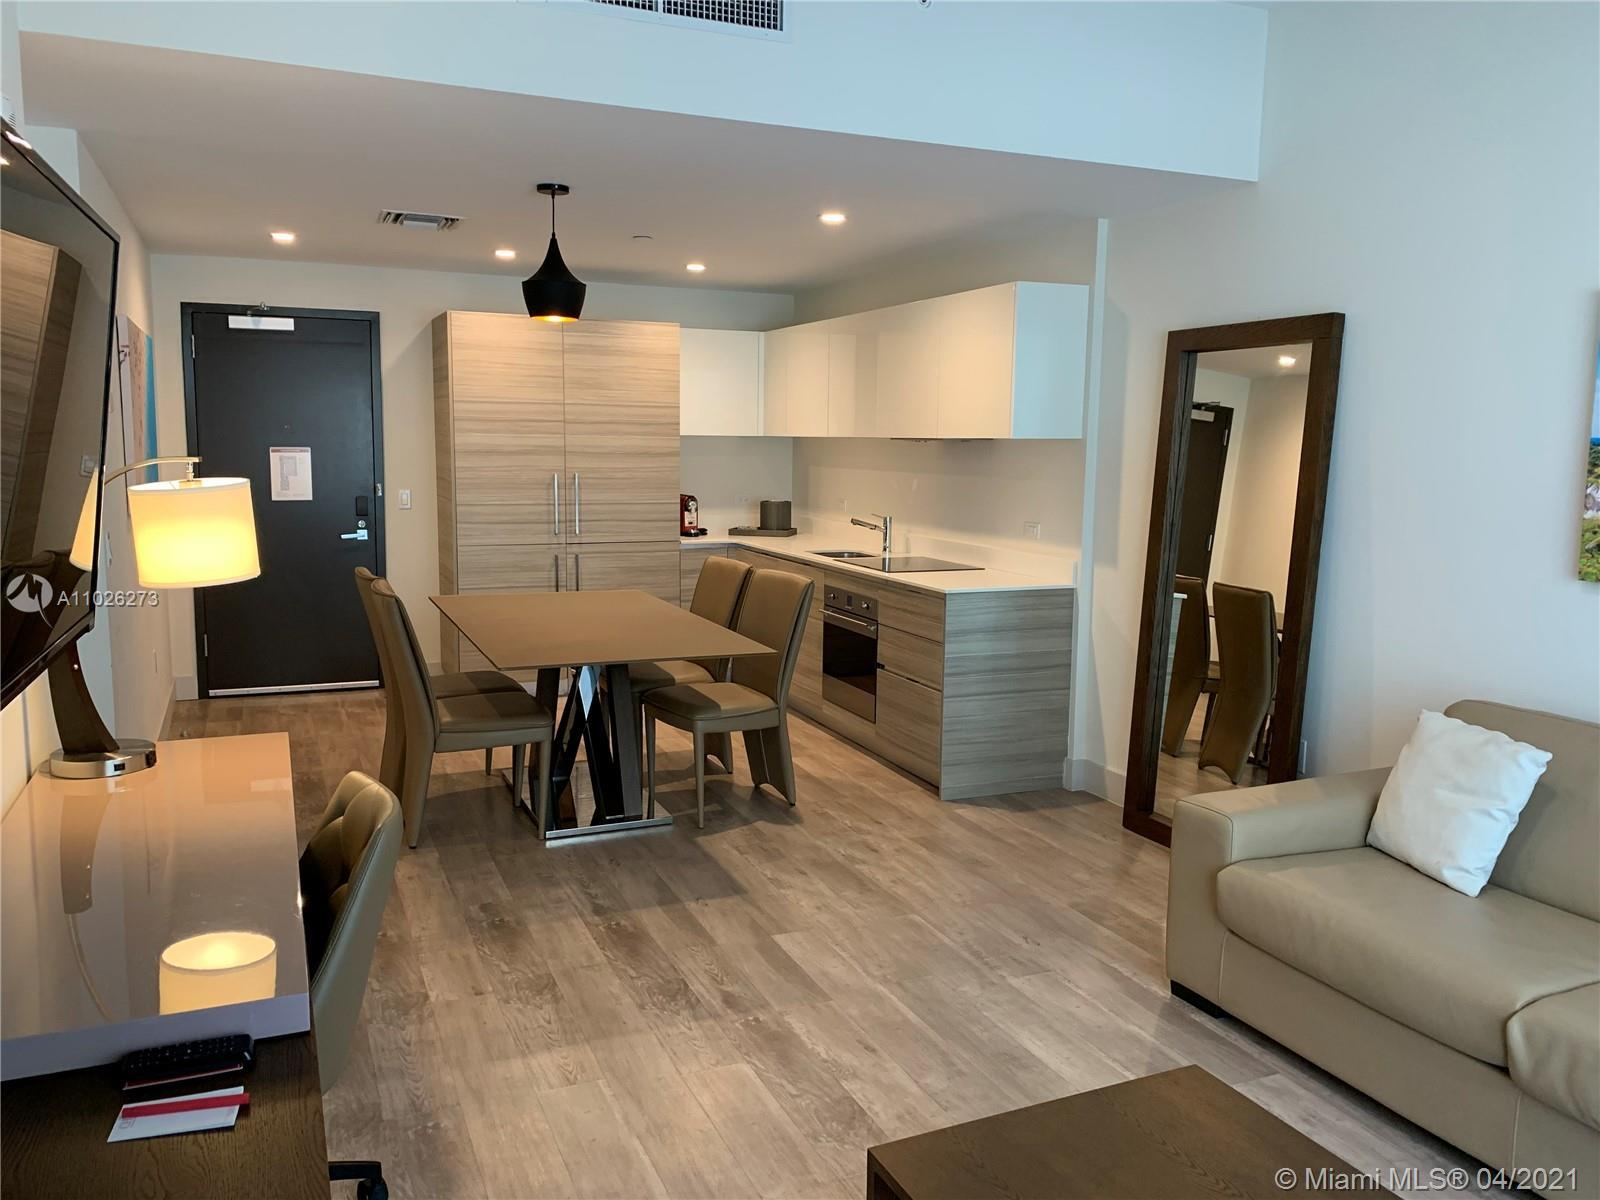 Modern furnished unit steps to Hollywood Beach Boardwalk. Unit had a 95% occupation rate in March 20